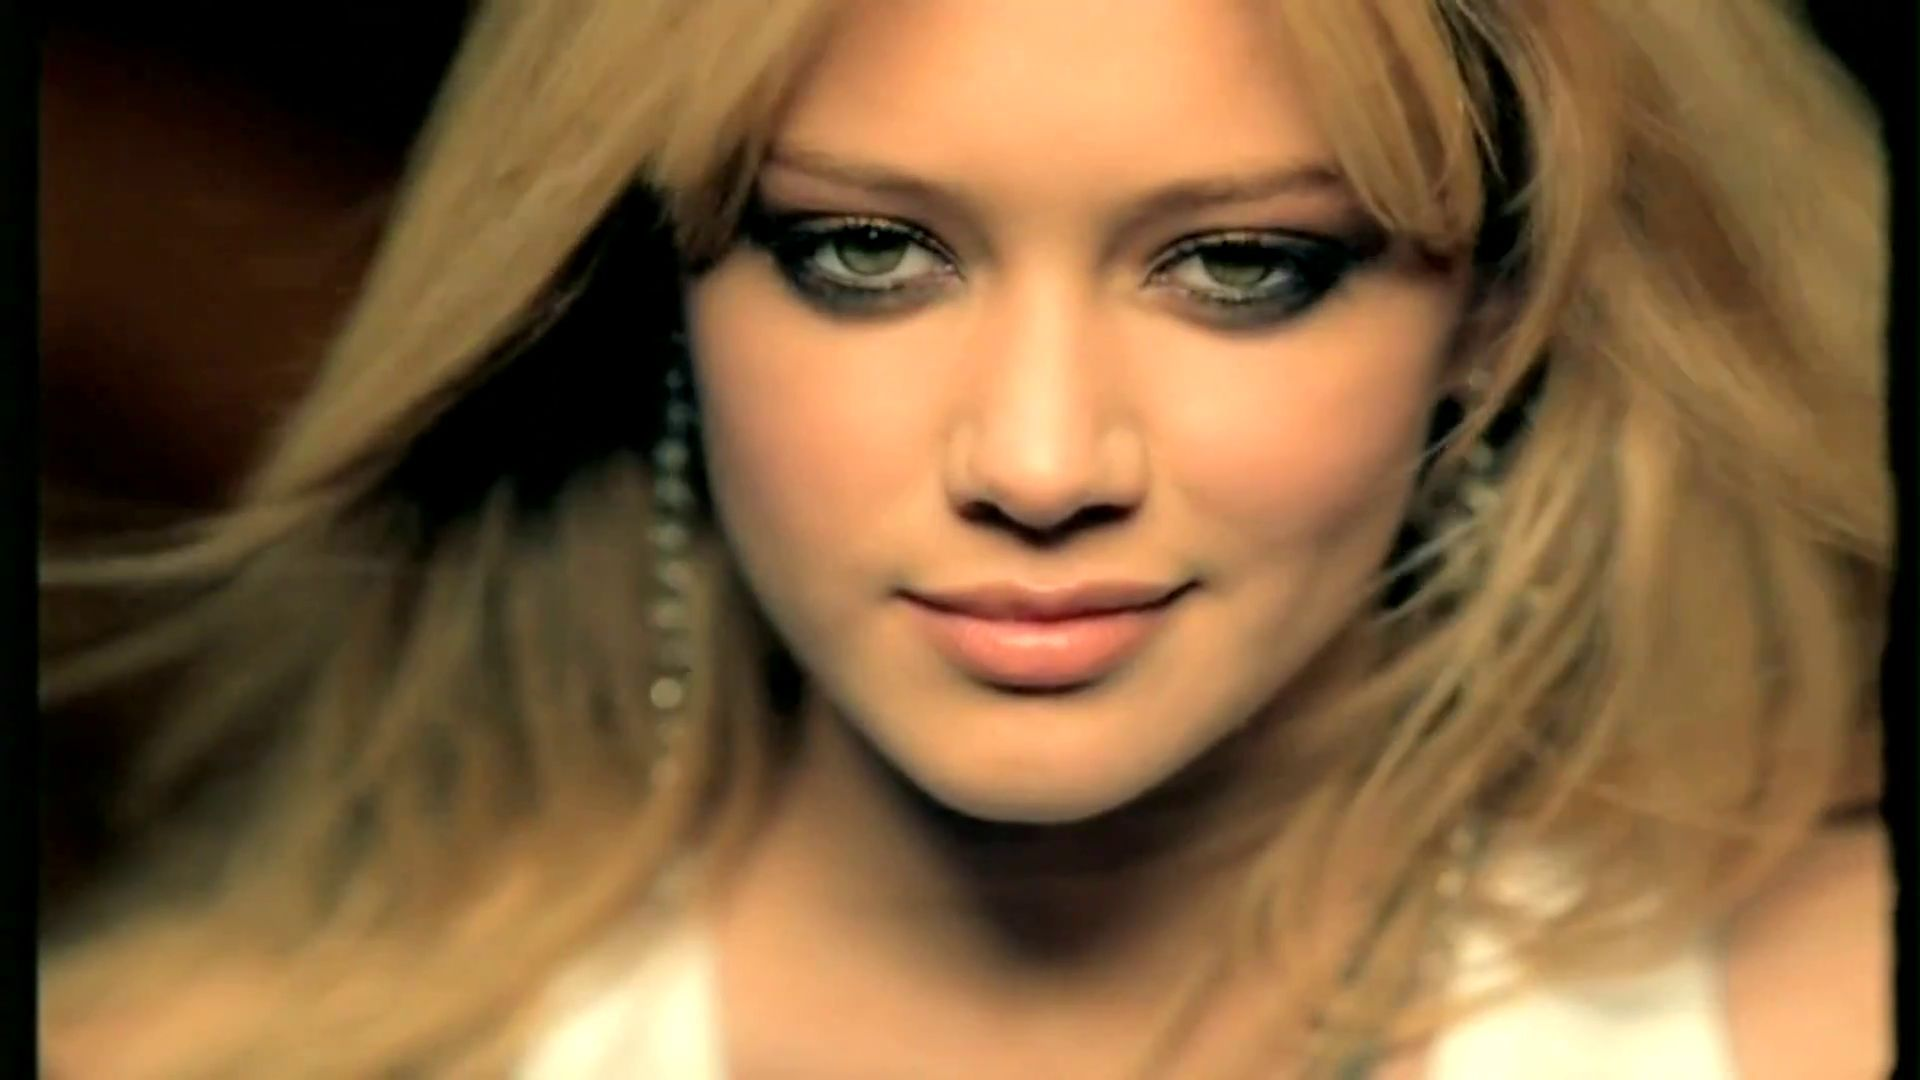 http://images4.fanpop.com/image/photos/22300000/Hilary-Duff-So-Yesterday-Music-Video-hilary-duff-22386758-1920-1080.jpg